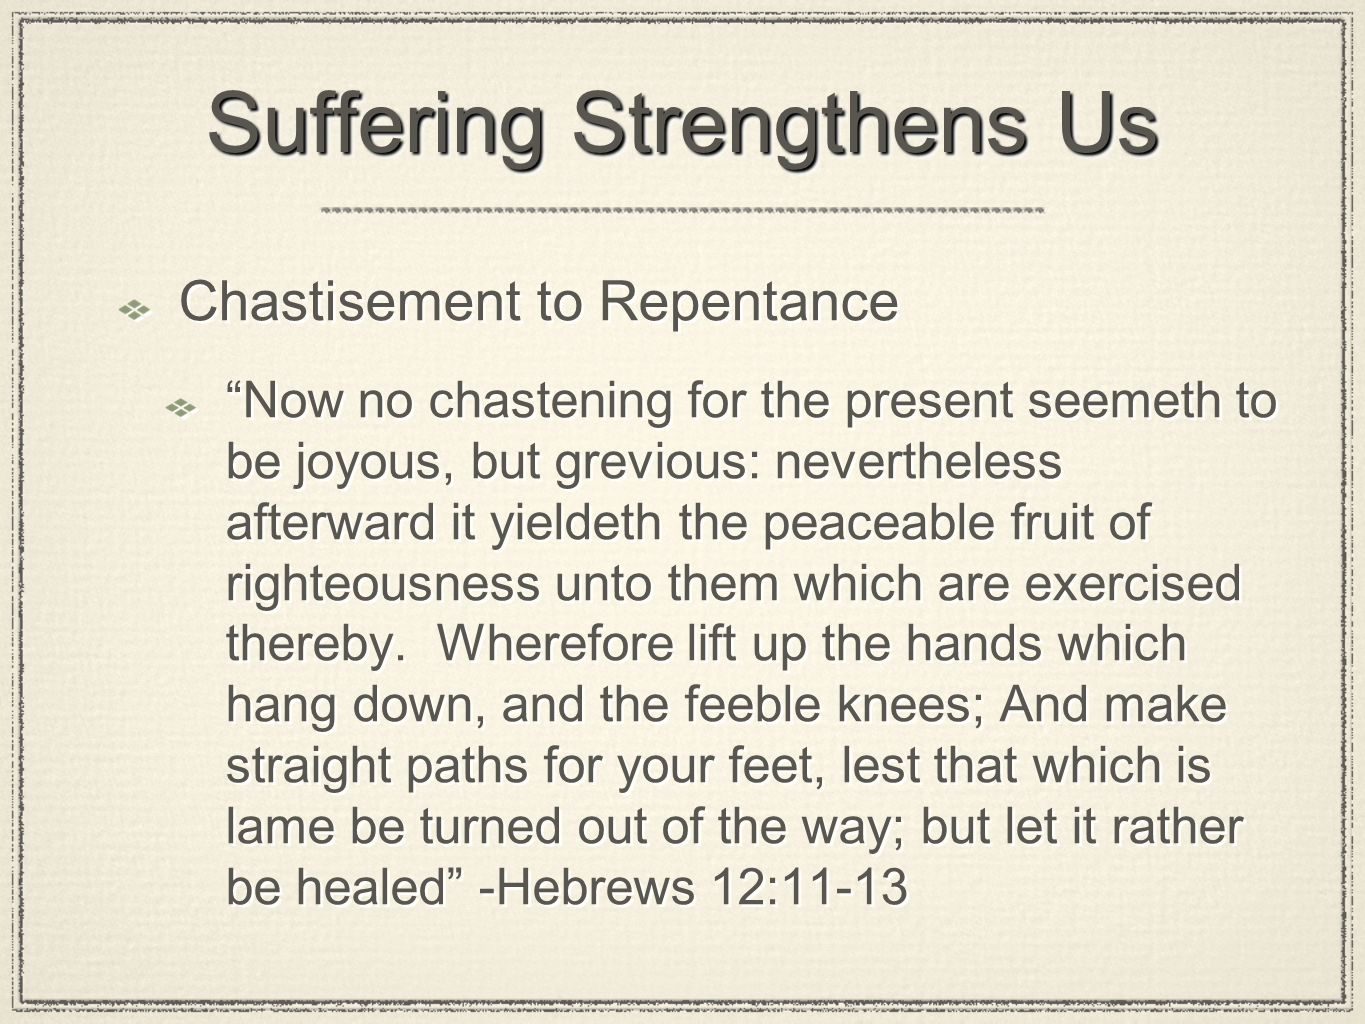 Suffering Strengthens Us Chastisement to Repentance Now no chastening for the present seemeth to be joyous, but grevious: nevertheless afterward it yieldeth the peaceable fruit of righteousness unto them which are exercised thereby.